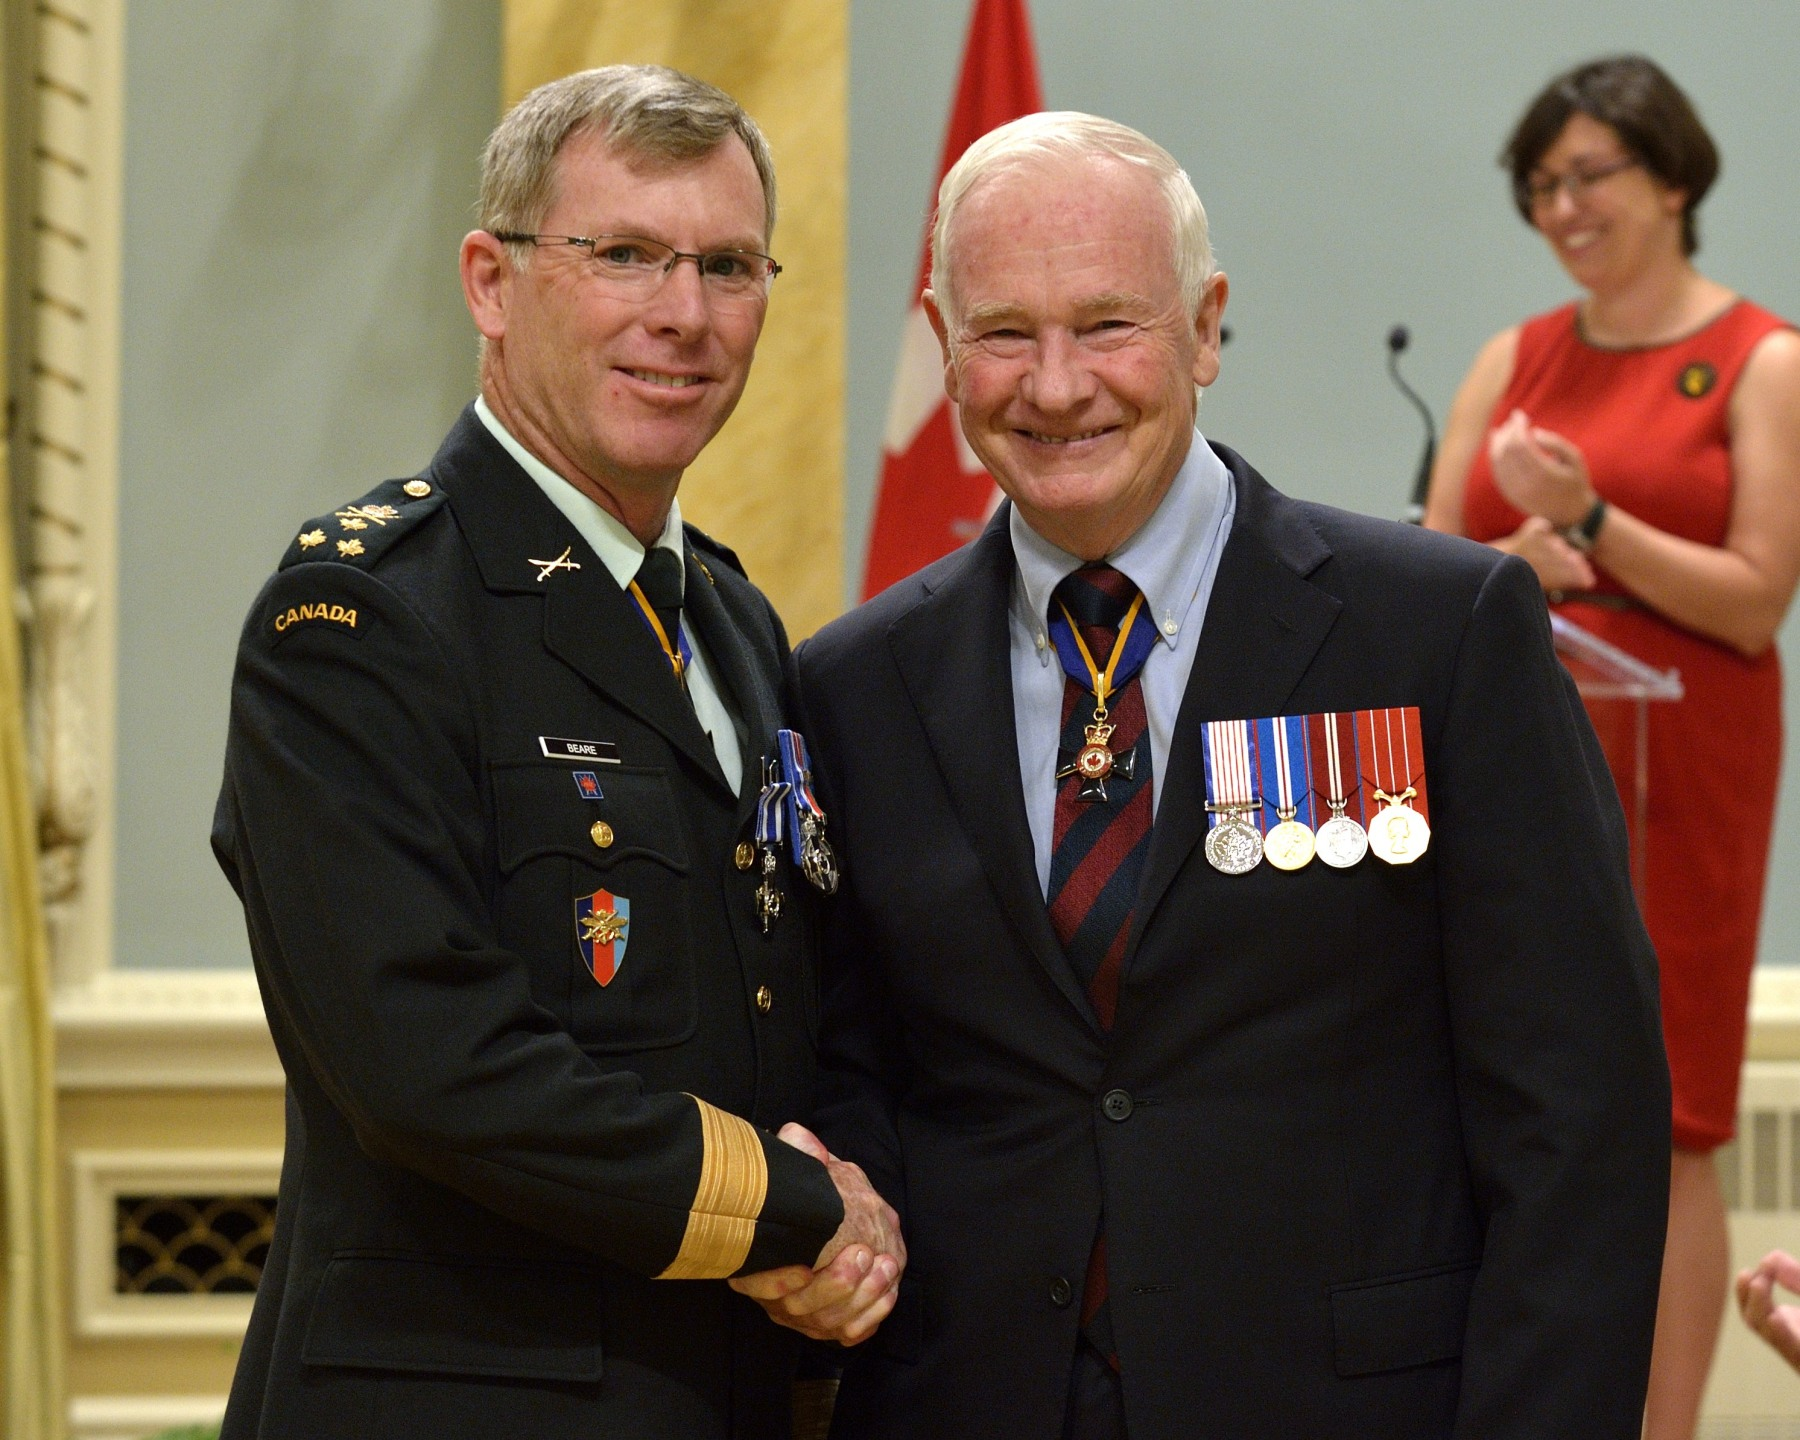 Major-General Stuart A. Beare, C.M.M., M.S.C., M.S.M., C.D. (Shilo, Manitoba) received the Meritorious Service Cross (Military Division). As the deputy commander of the military police within the NATO Training Mission–Afghanistan from June 2010 to July 2011, Major-General Beare led the largest build-up of police forces in the mission's history. Working tirelessly with his Afghan counterparts and commanding a diverse, multinational organization, he built a solid foundation for the Afghan National Police and positioned the organization for ongoing success. Major-General Beare's leadership and strategic vision had a profound and lasting impact on the success of the mission.